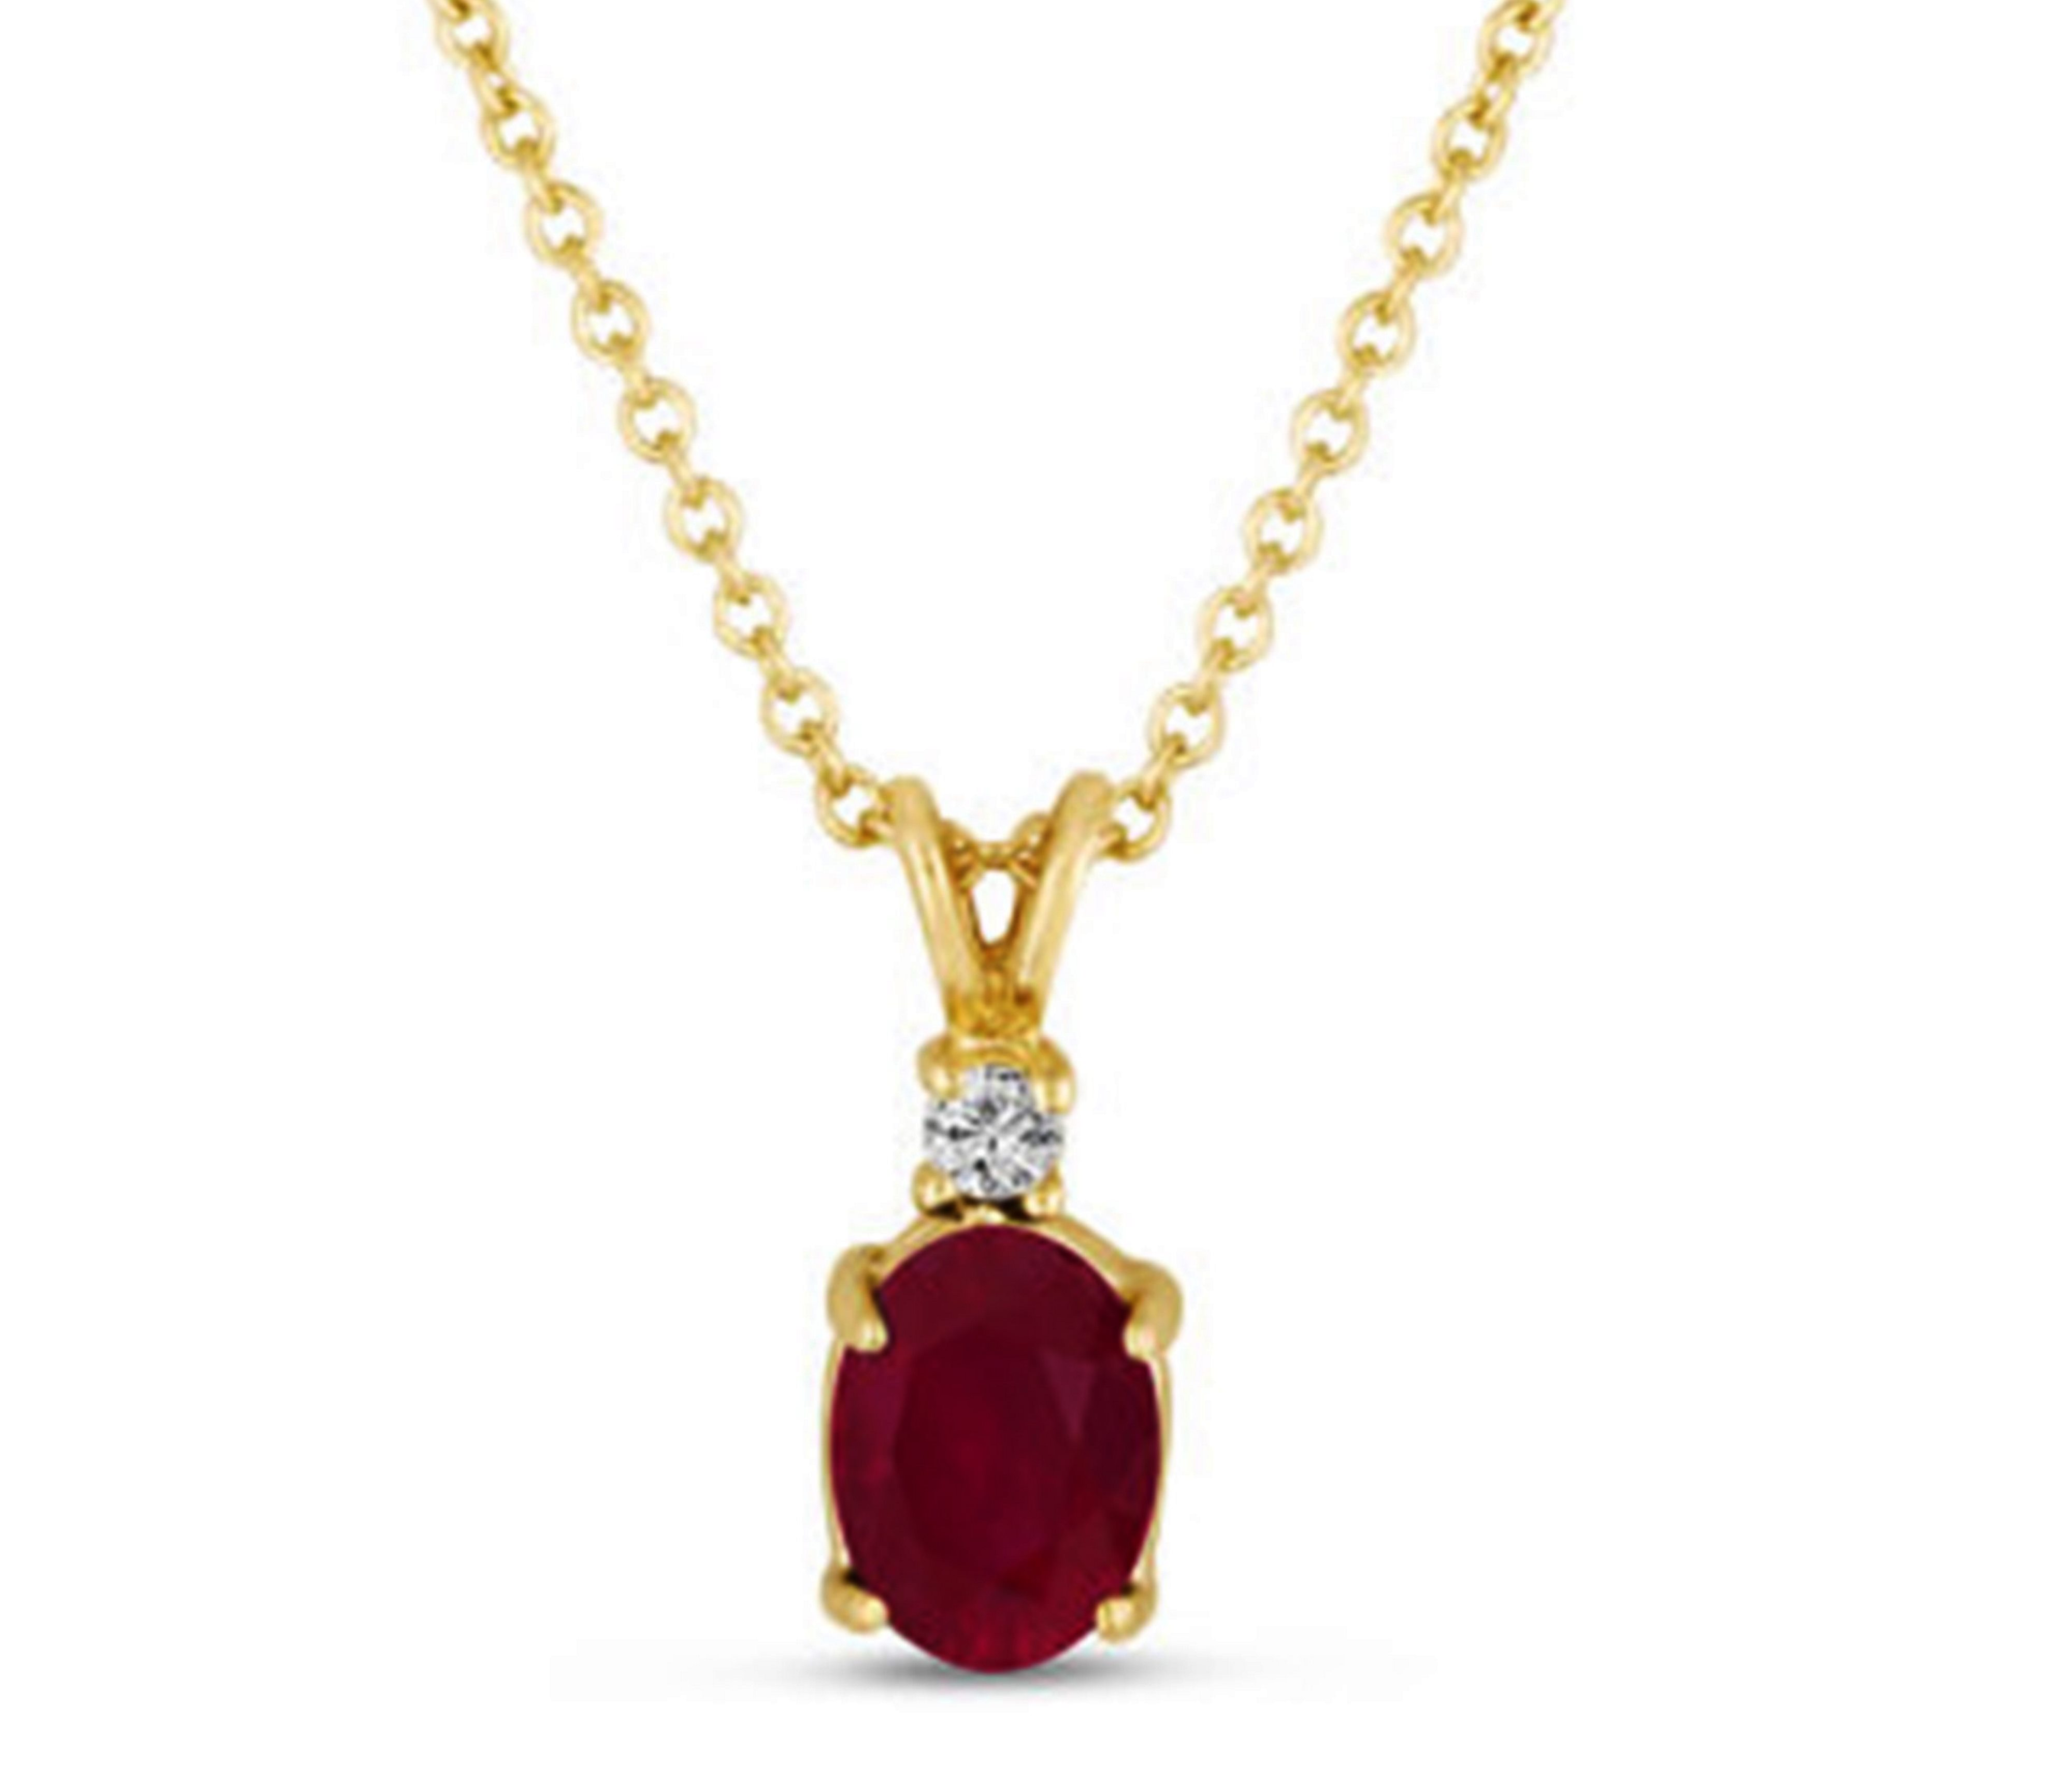 Classic 1 Ctw Oval Shaped Natural Ruby with 0.01 Ctw Solitaire Diamond Necklace n 14K Yellow Gold by Diamond Princess